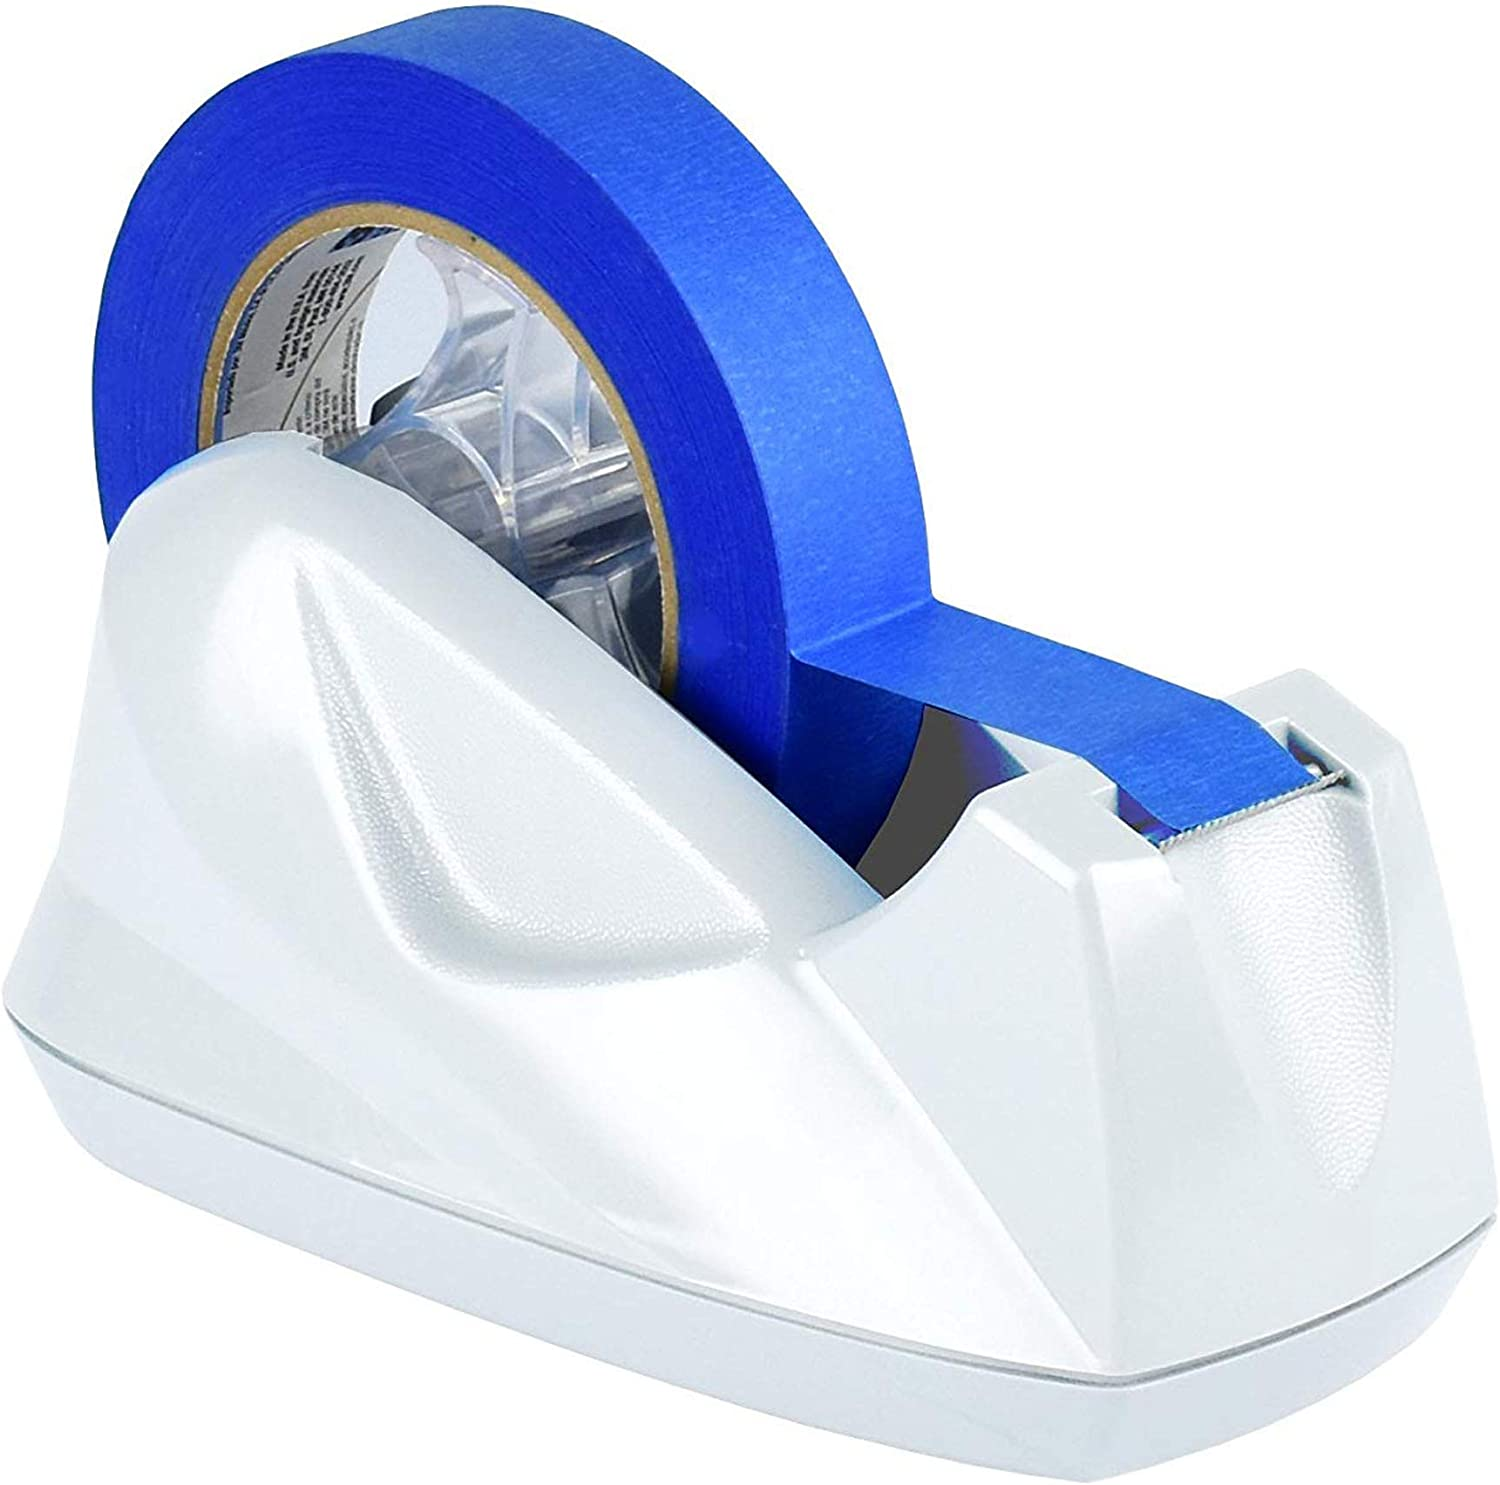 Acrimet Premium Desktop Tape Dispenser Jumbo Non-Skid Base (Heavy Duty) (White Color)